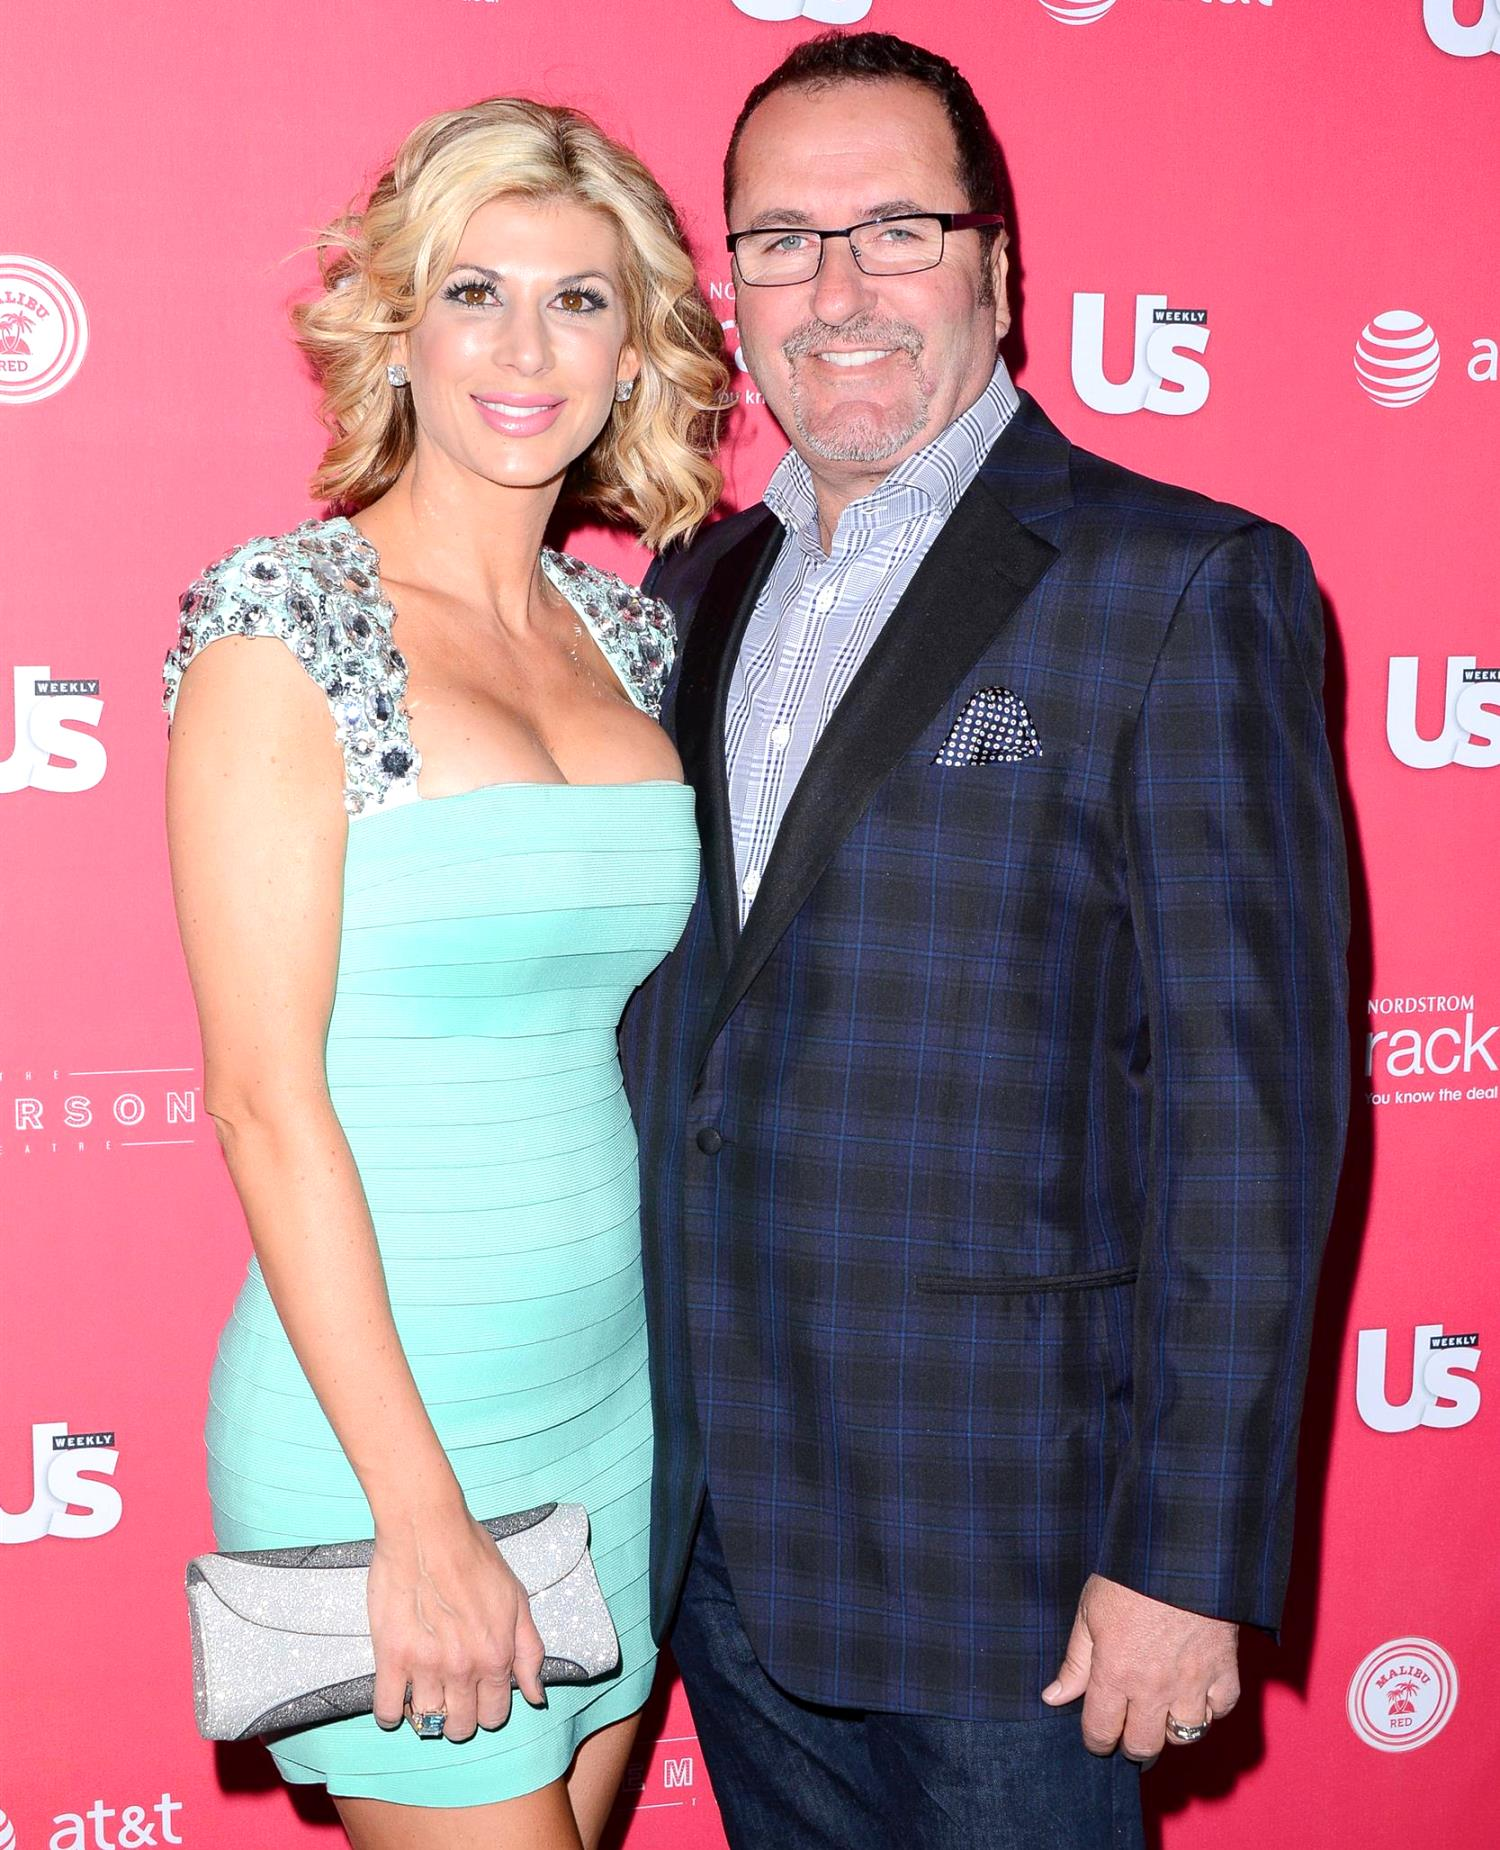 RHOC Alexis Bellino and Jim Bellino Divorce Update